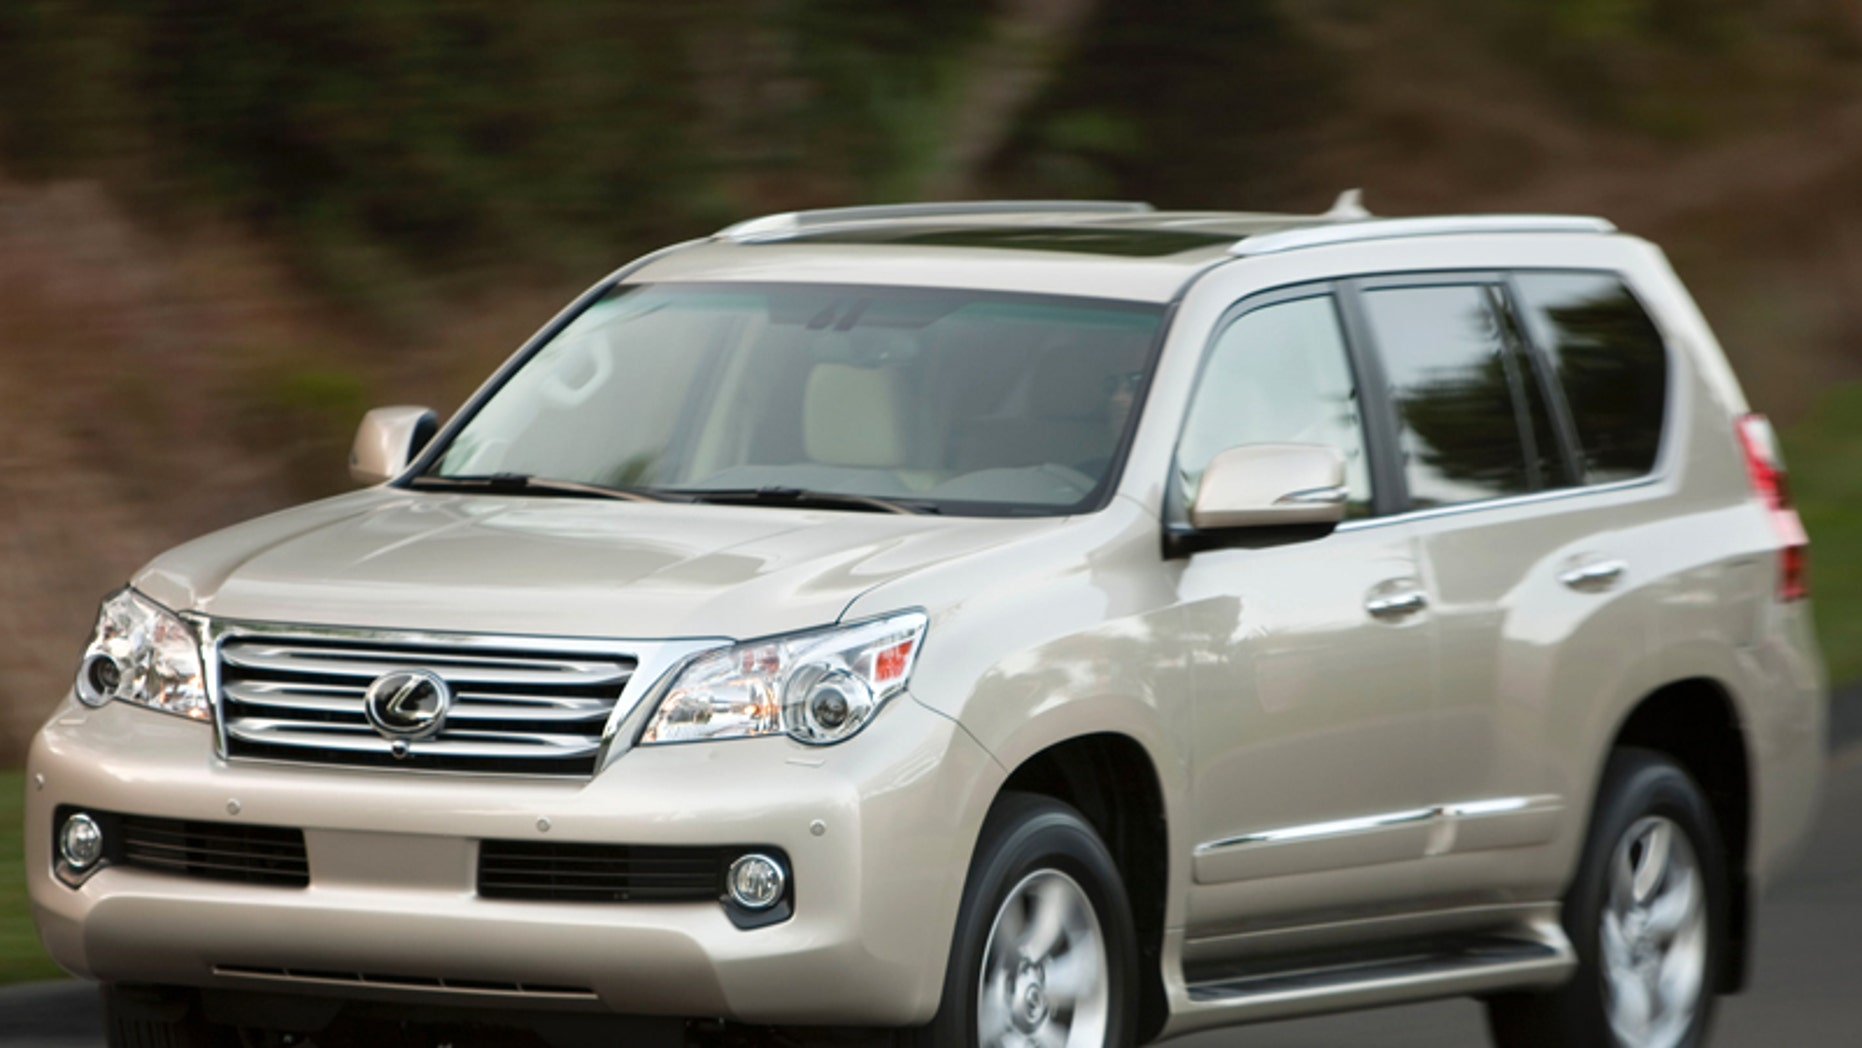 The 2010 Lexus GX 460